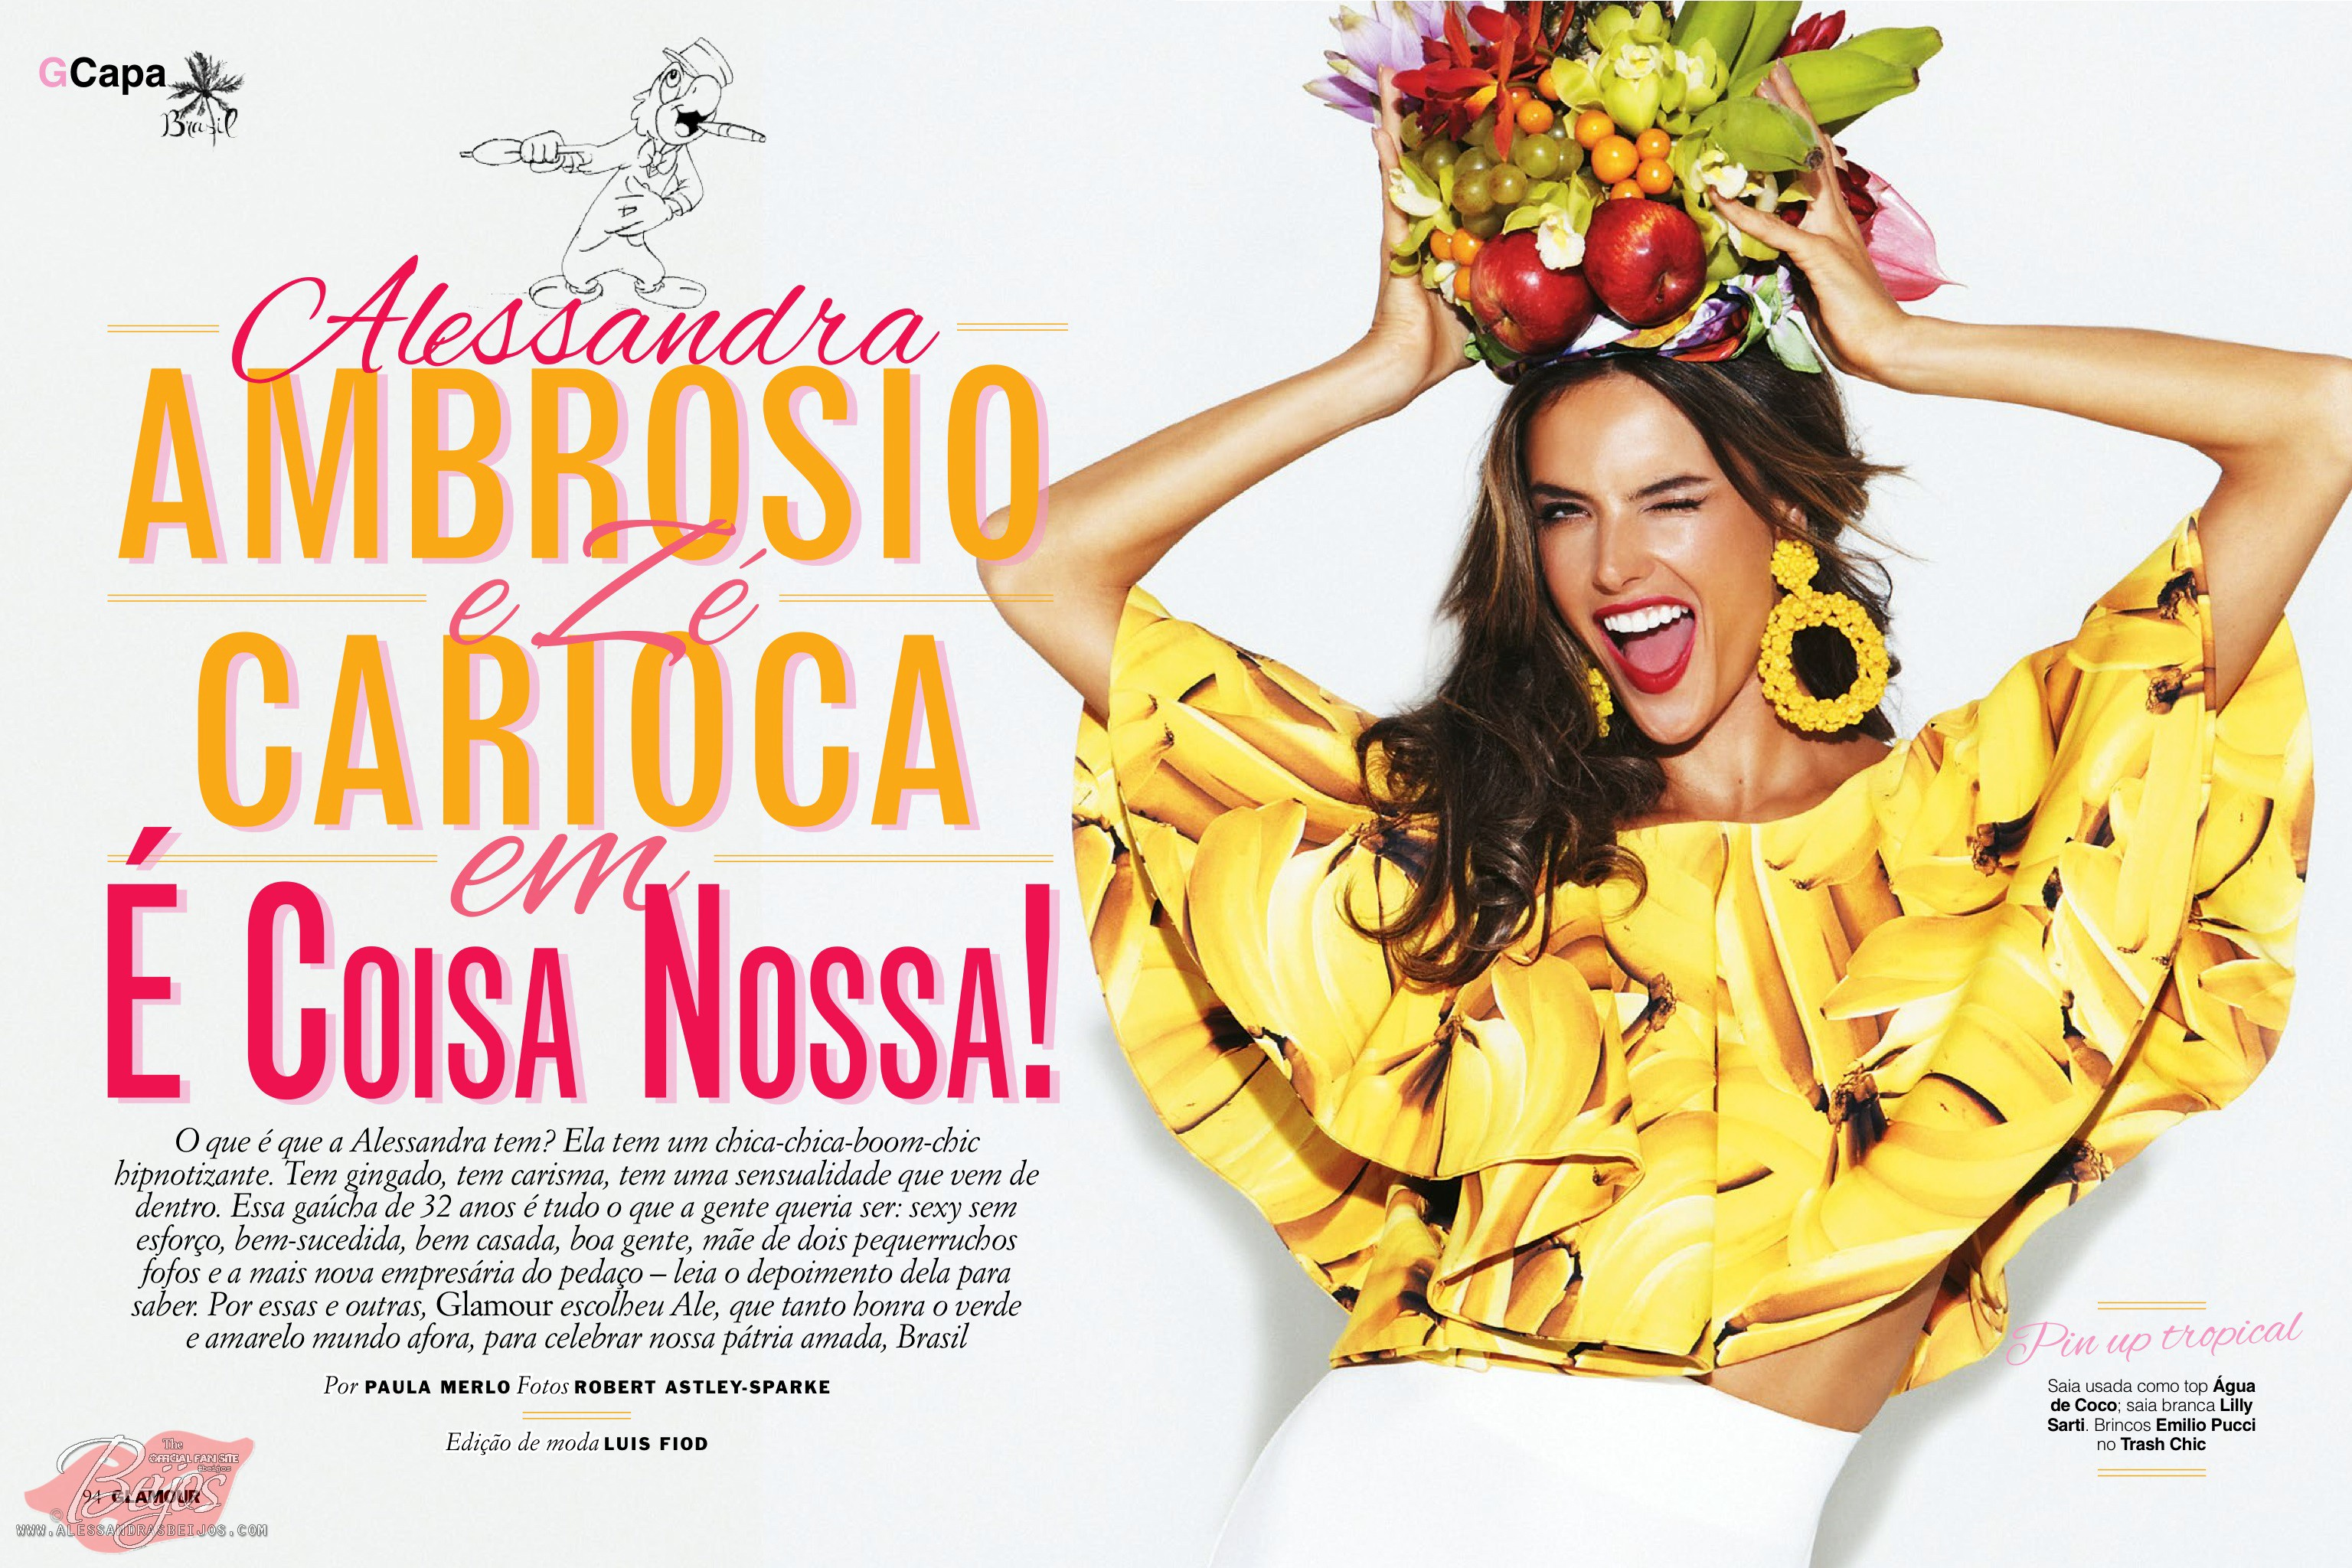 Beautiful Brazilian Fashion Model Alessandra Ambrosio Modeling For Glamour Brazil (Glamour Brasil) Magazine Modeling As One Of The Highest Paid Models In Brazil (Brasil).